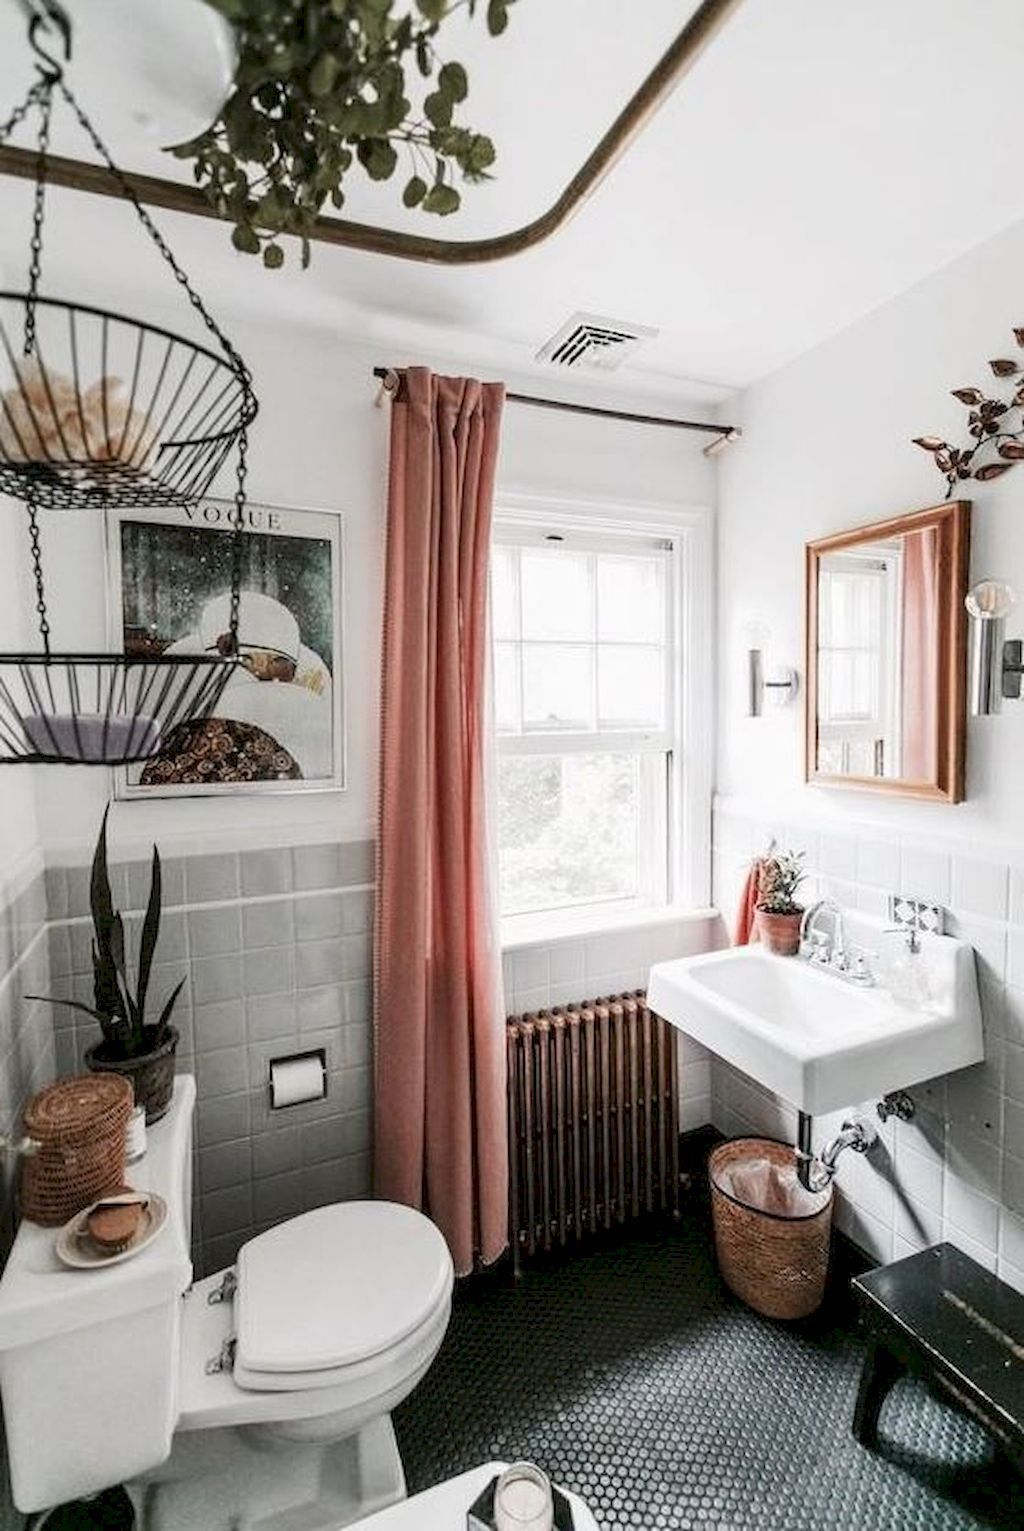 Pin by Home improvement Center on Modern Bathroom Remodeling ...